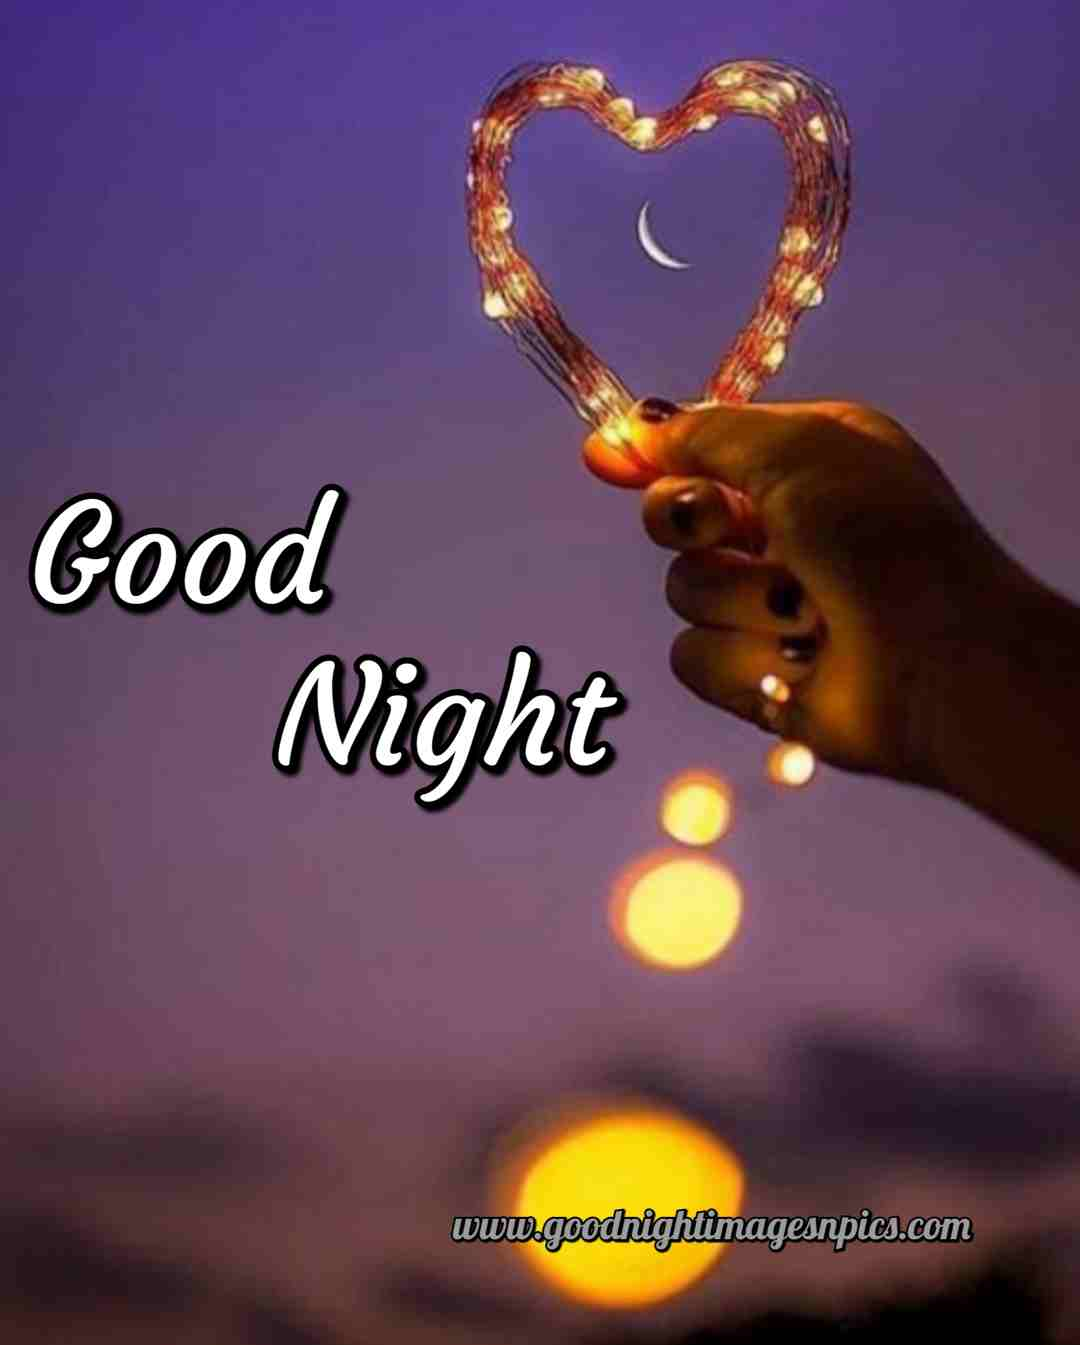 Good Night GIF Images For Whatsapp